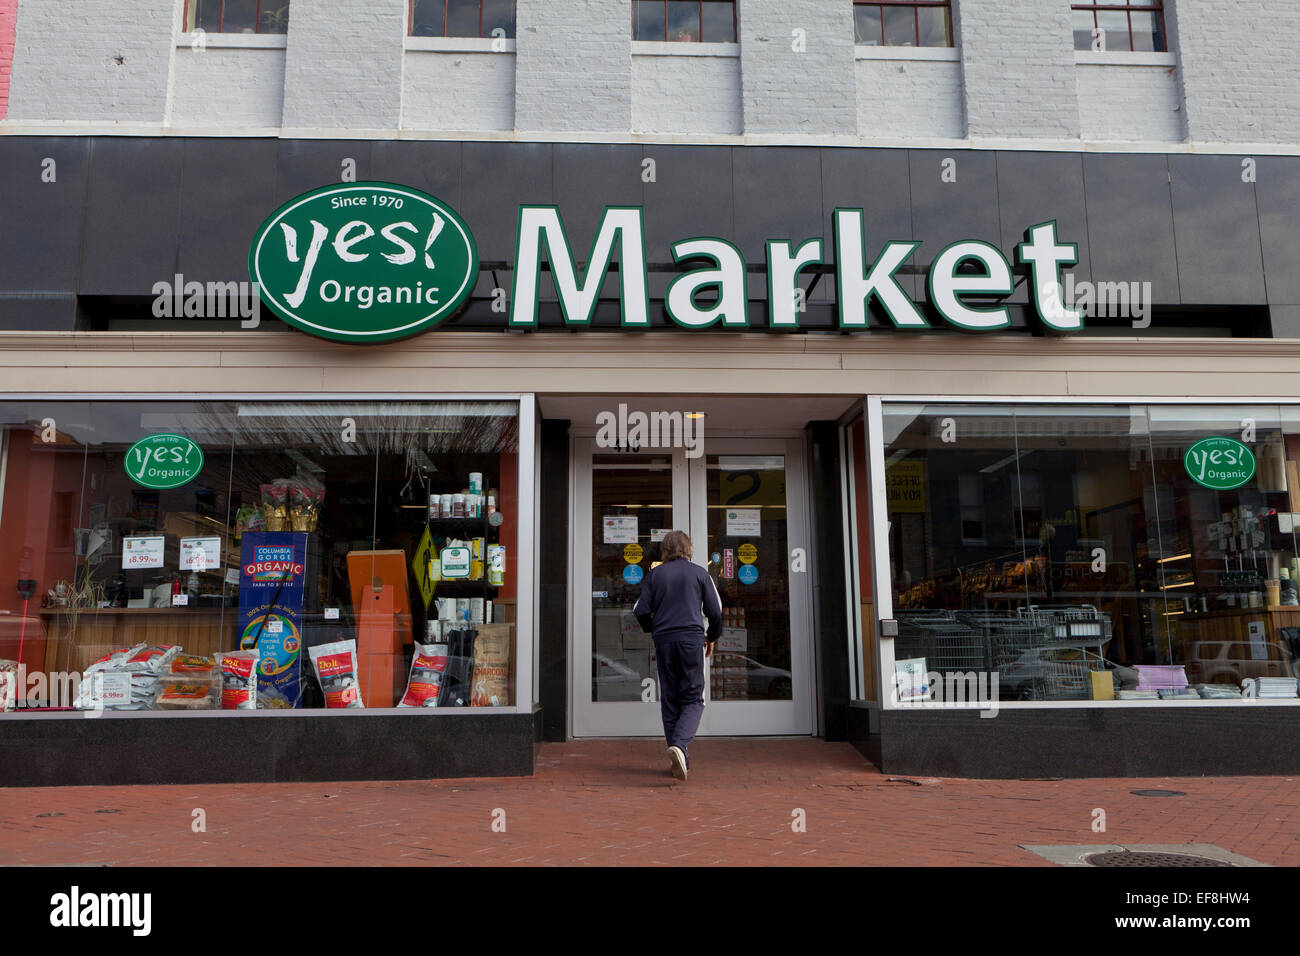 Yes! Organic Market - Washington, DC USA - Stock Image